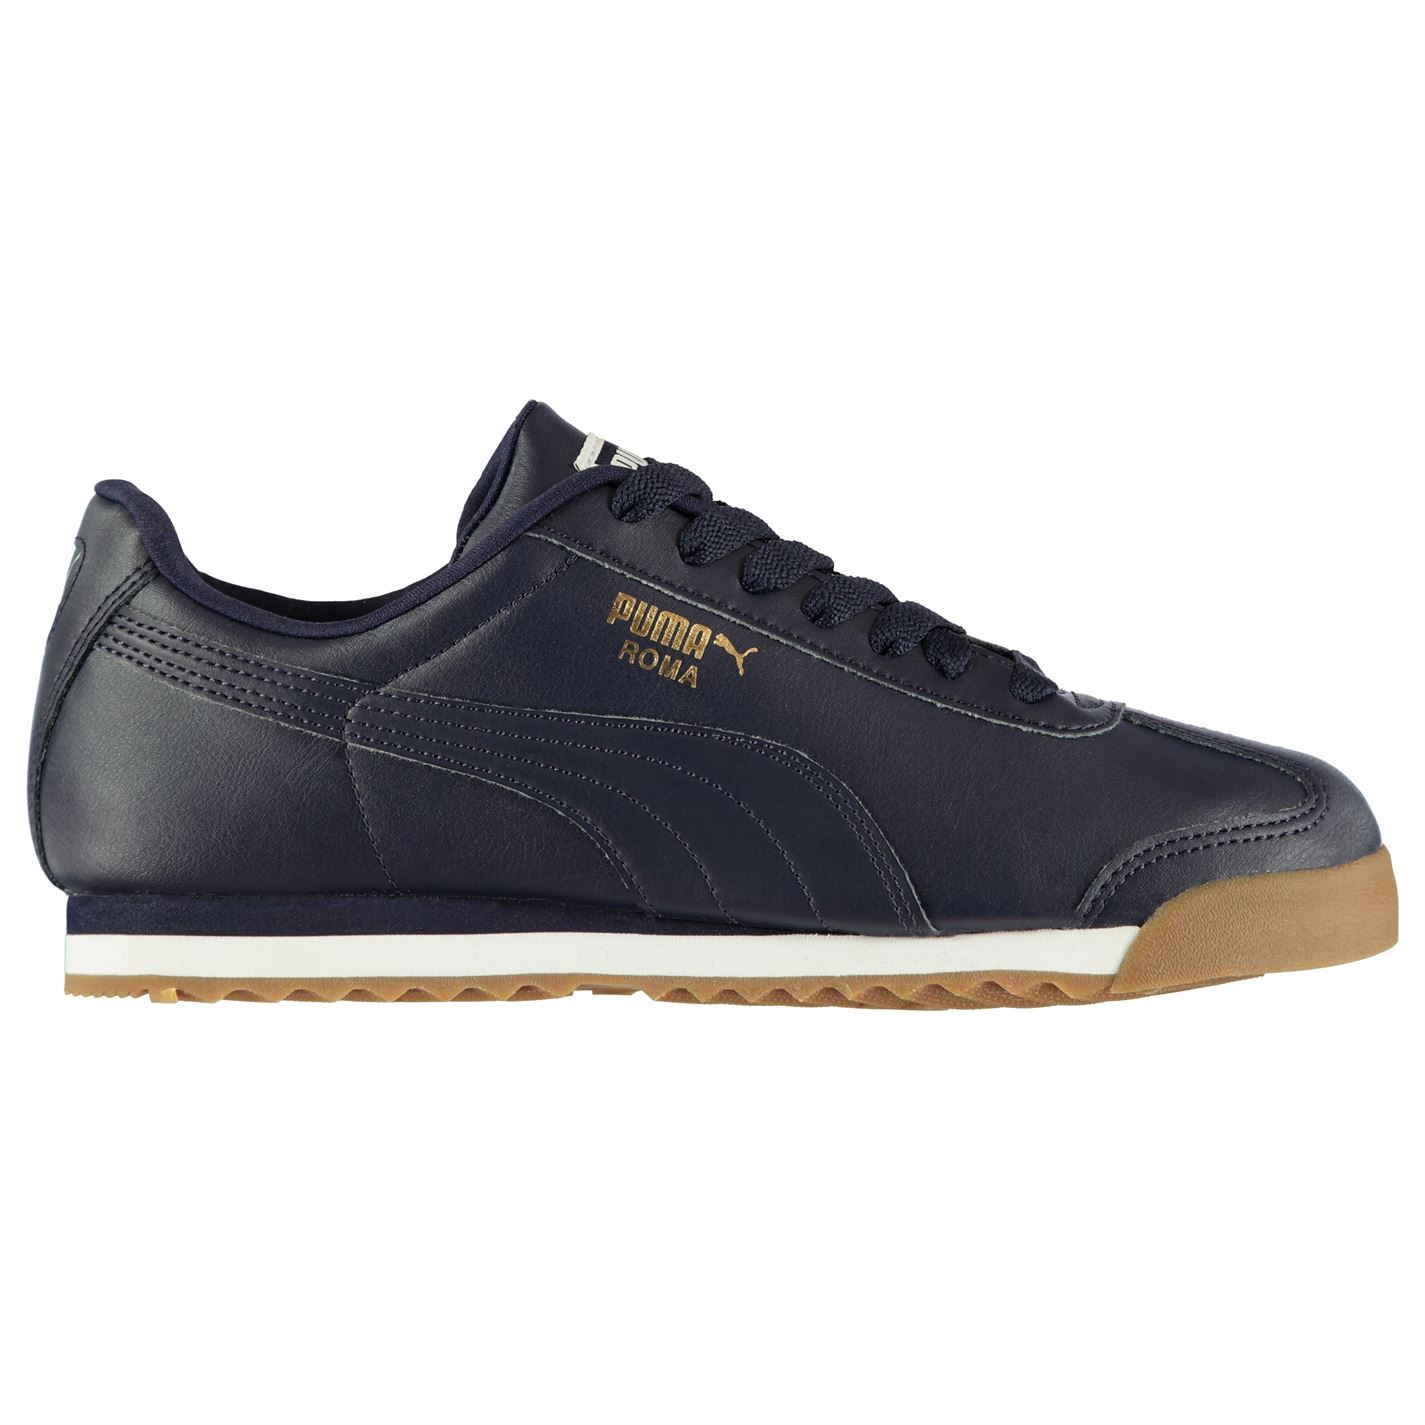 Puma-Roma-Basic-Trainers-Mens-Athleisure-Footwear-Shoes-Sneakers thumbnail 13